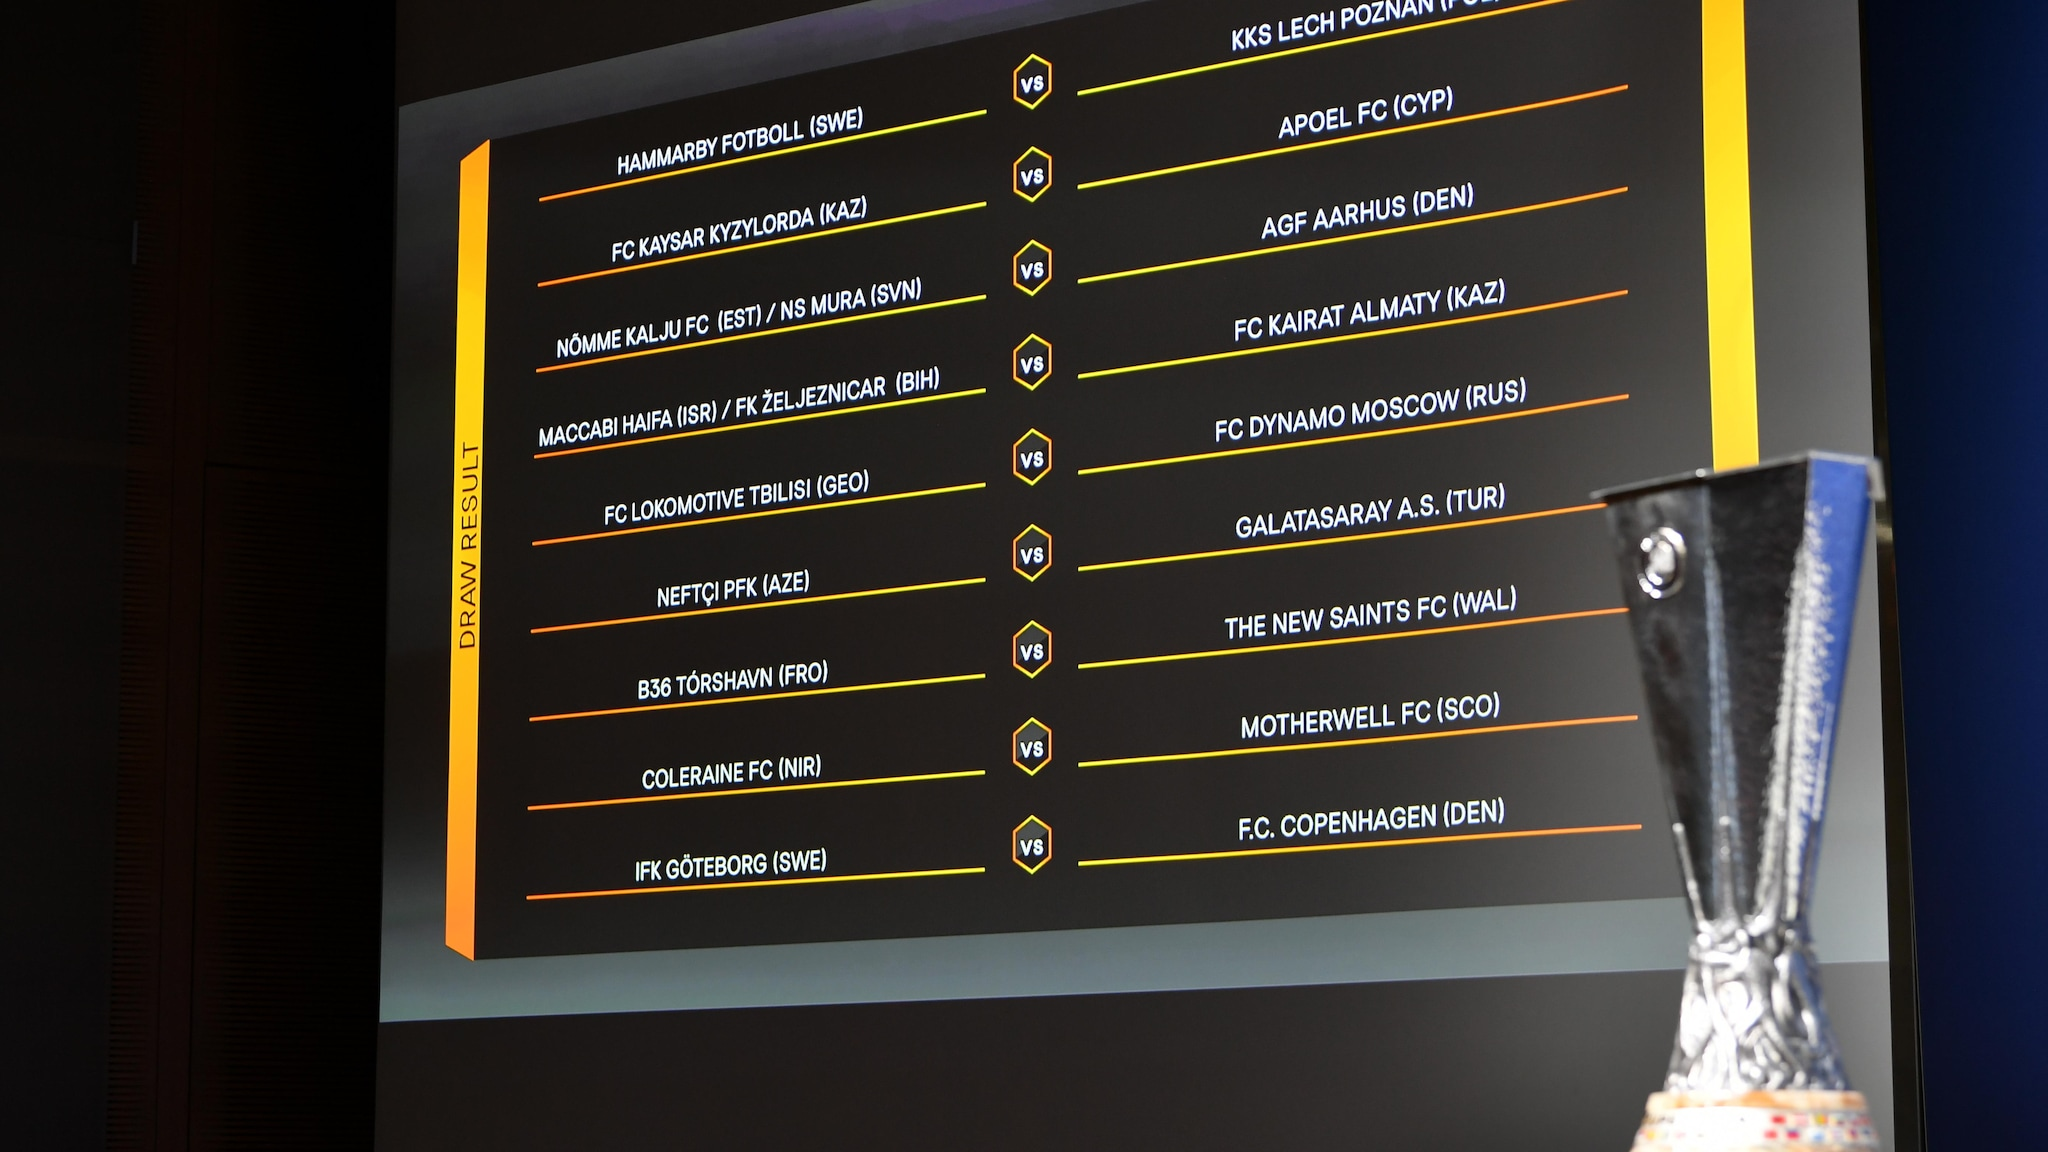 uefa europa league second qualifying round draw uefa europa league uefa com uefa europa league second qualifying